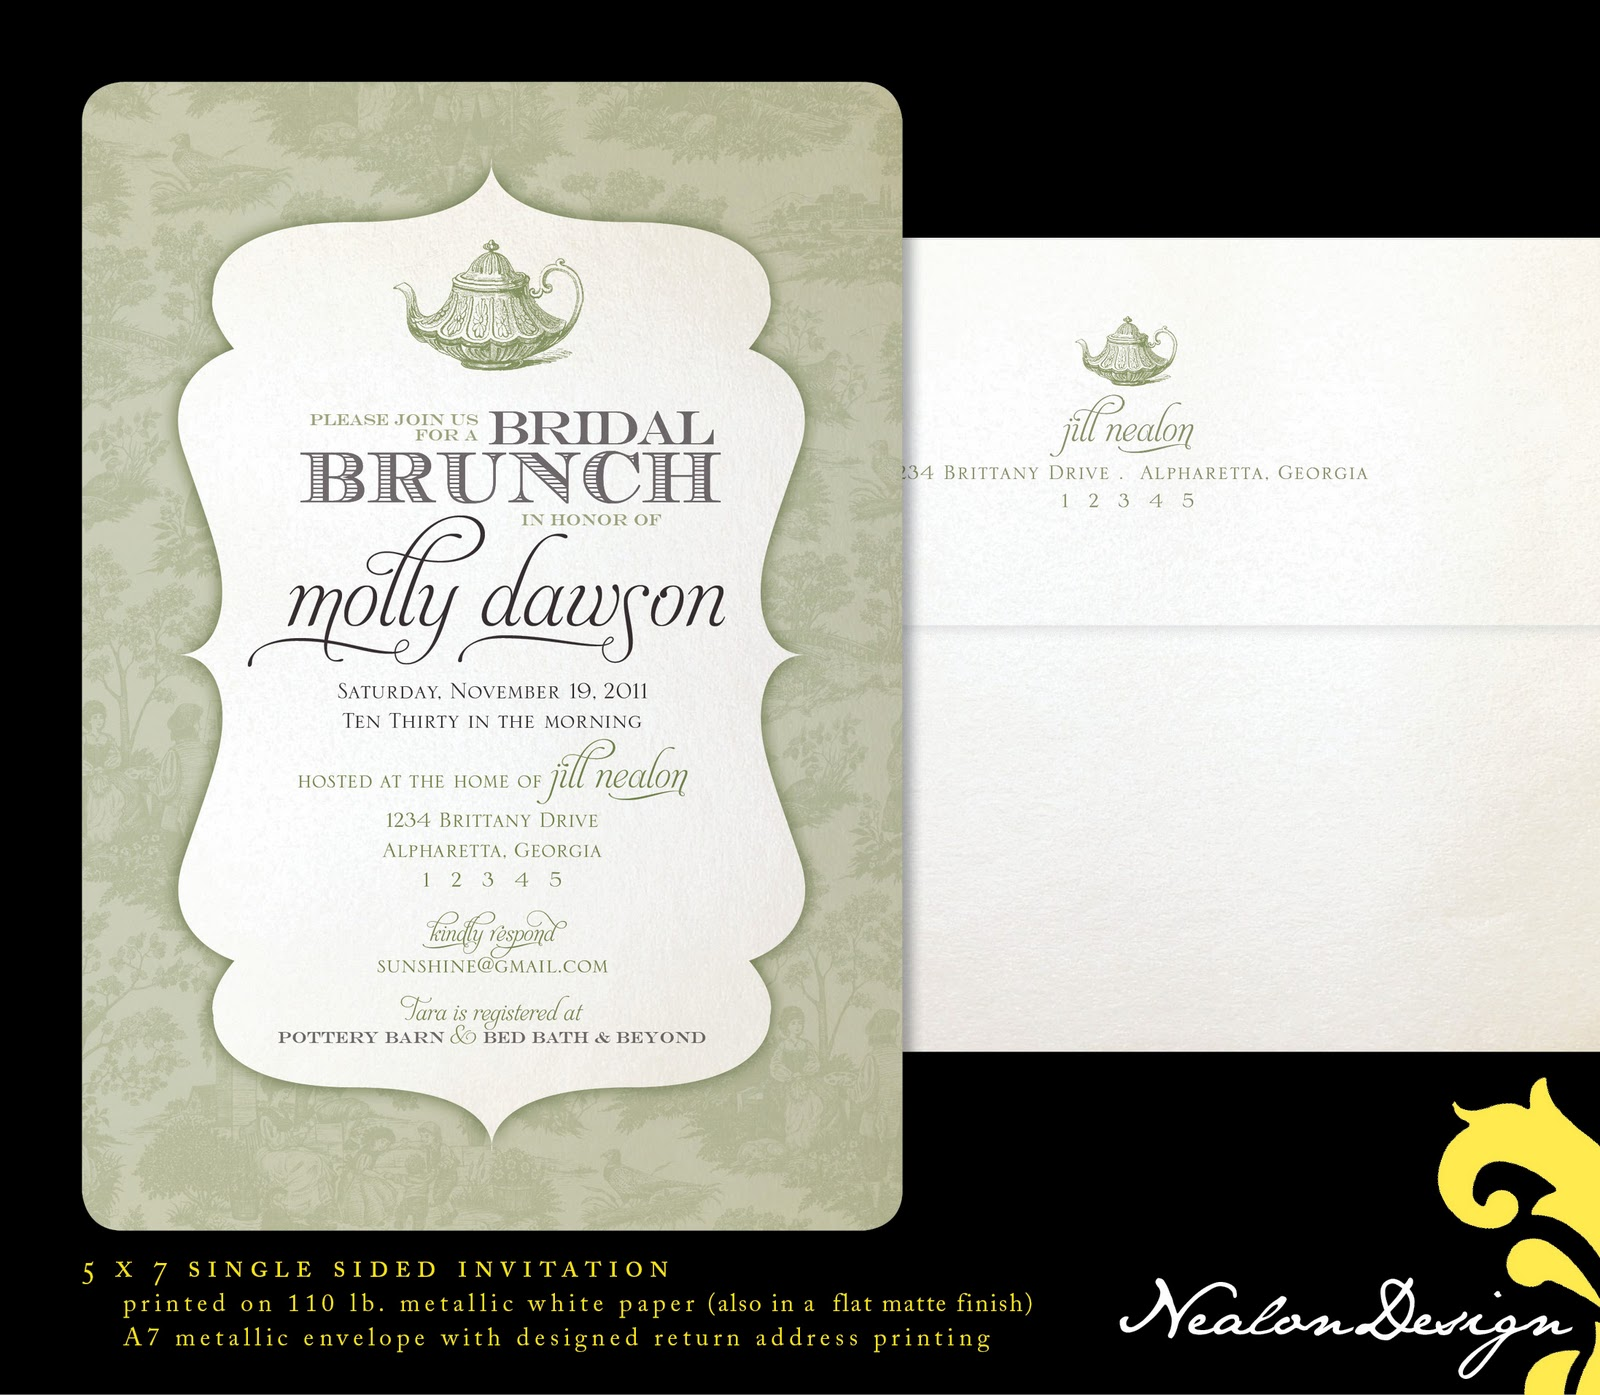 Bridal Brunch Shower Invitations is an amazing ideas you had to choose for invitation design